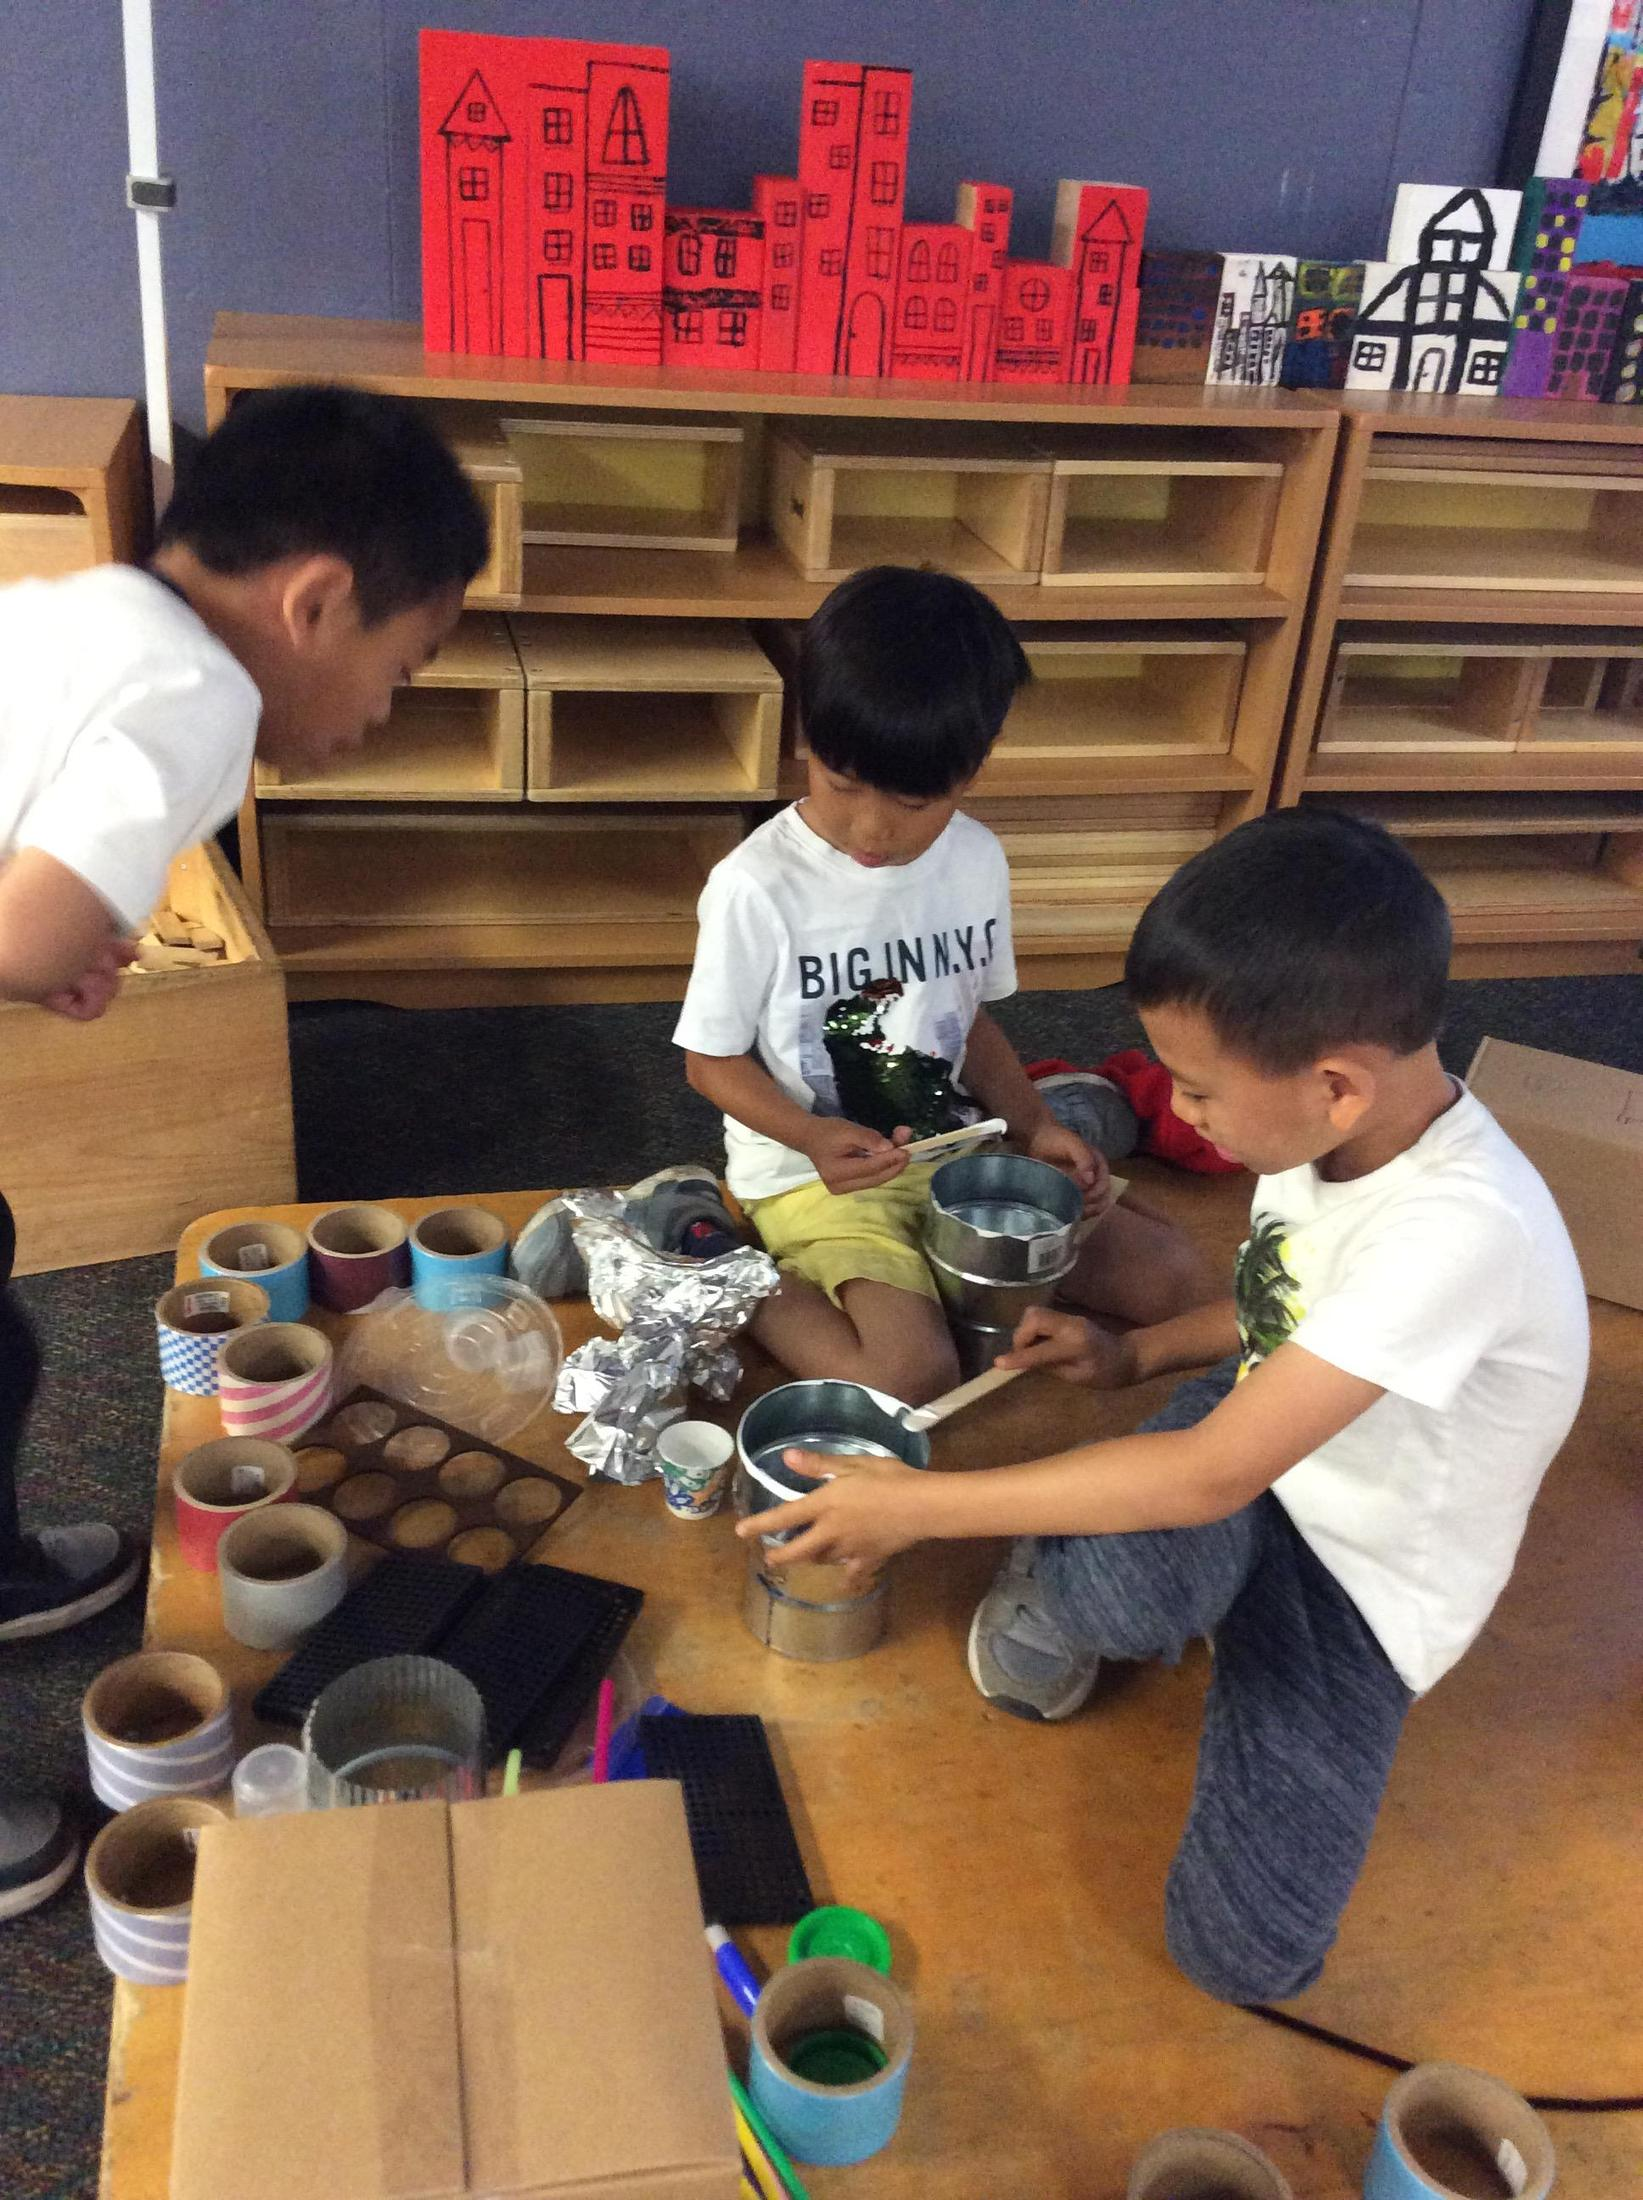 Children were working collaboratively in creating their wobble bots.s